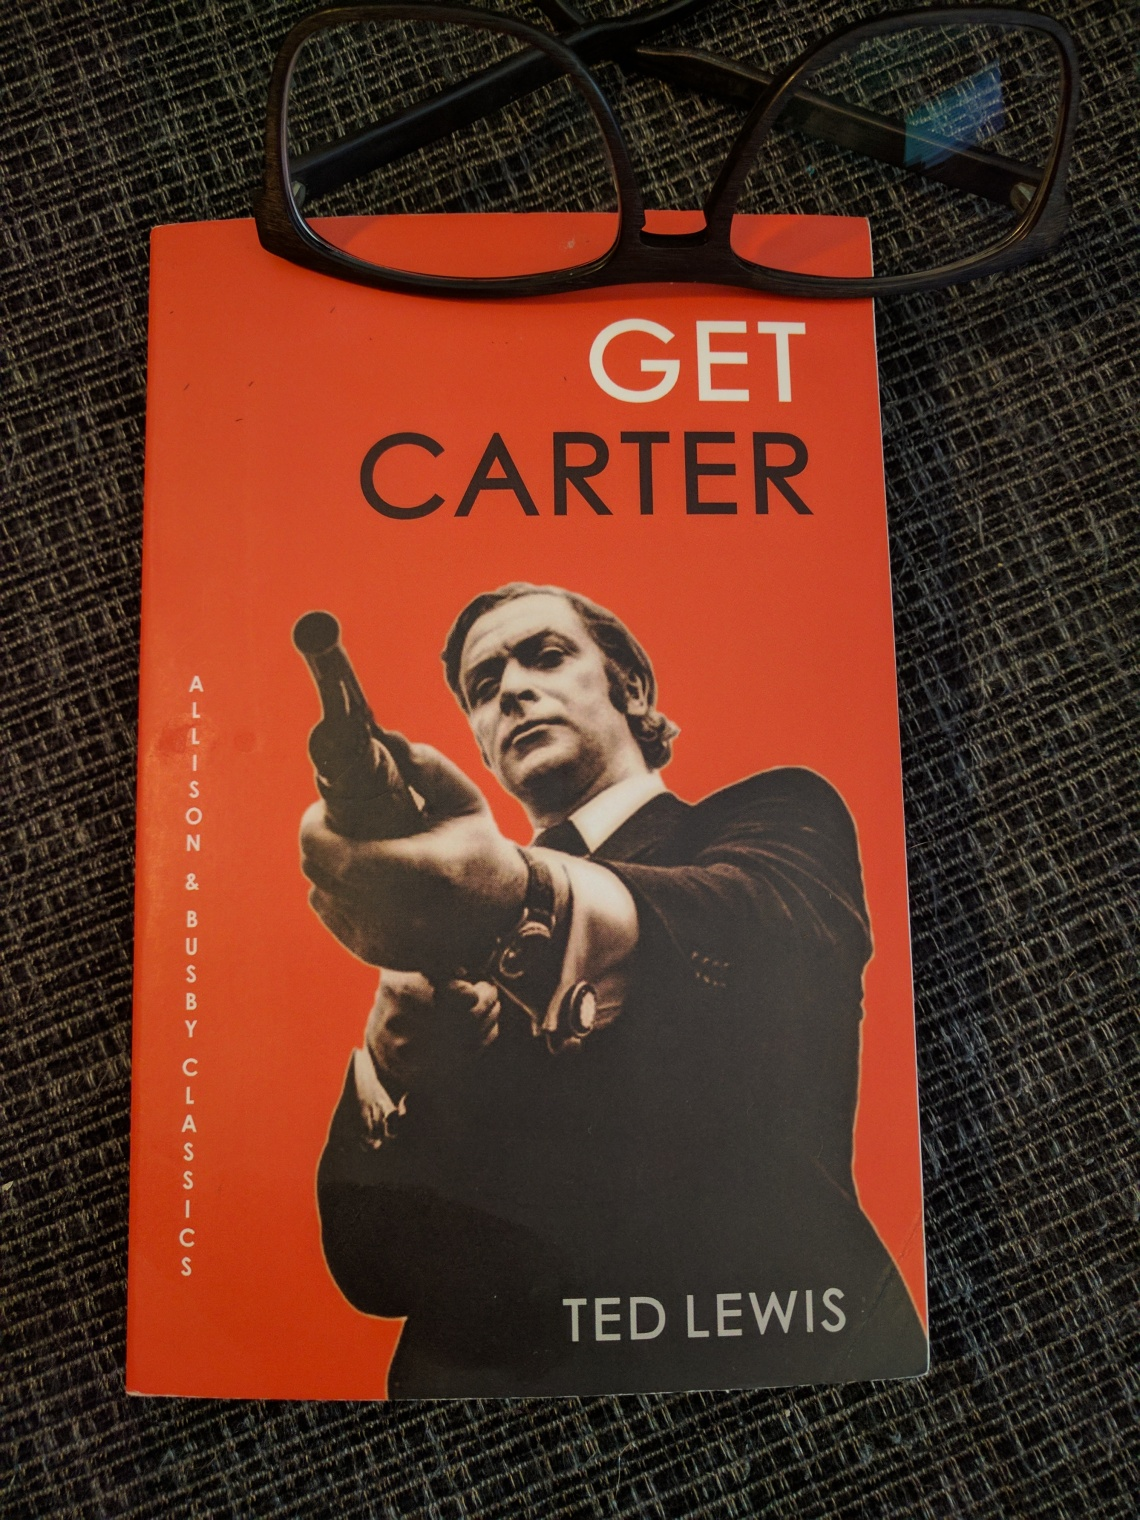 How To Review Book You Havent Read >> Book Review Ted Lewis Get Carter 2013 Allison Busby Limited